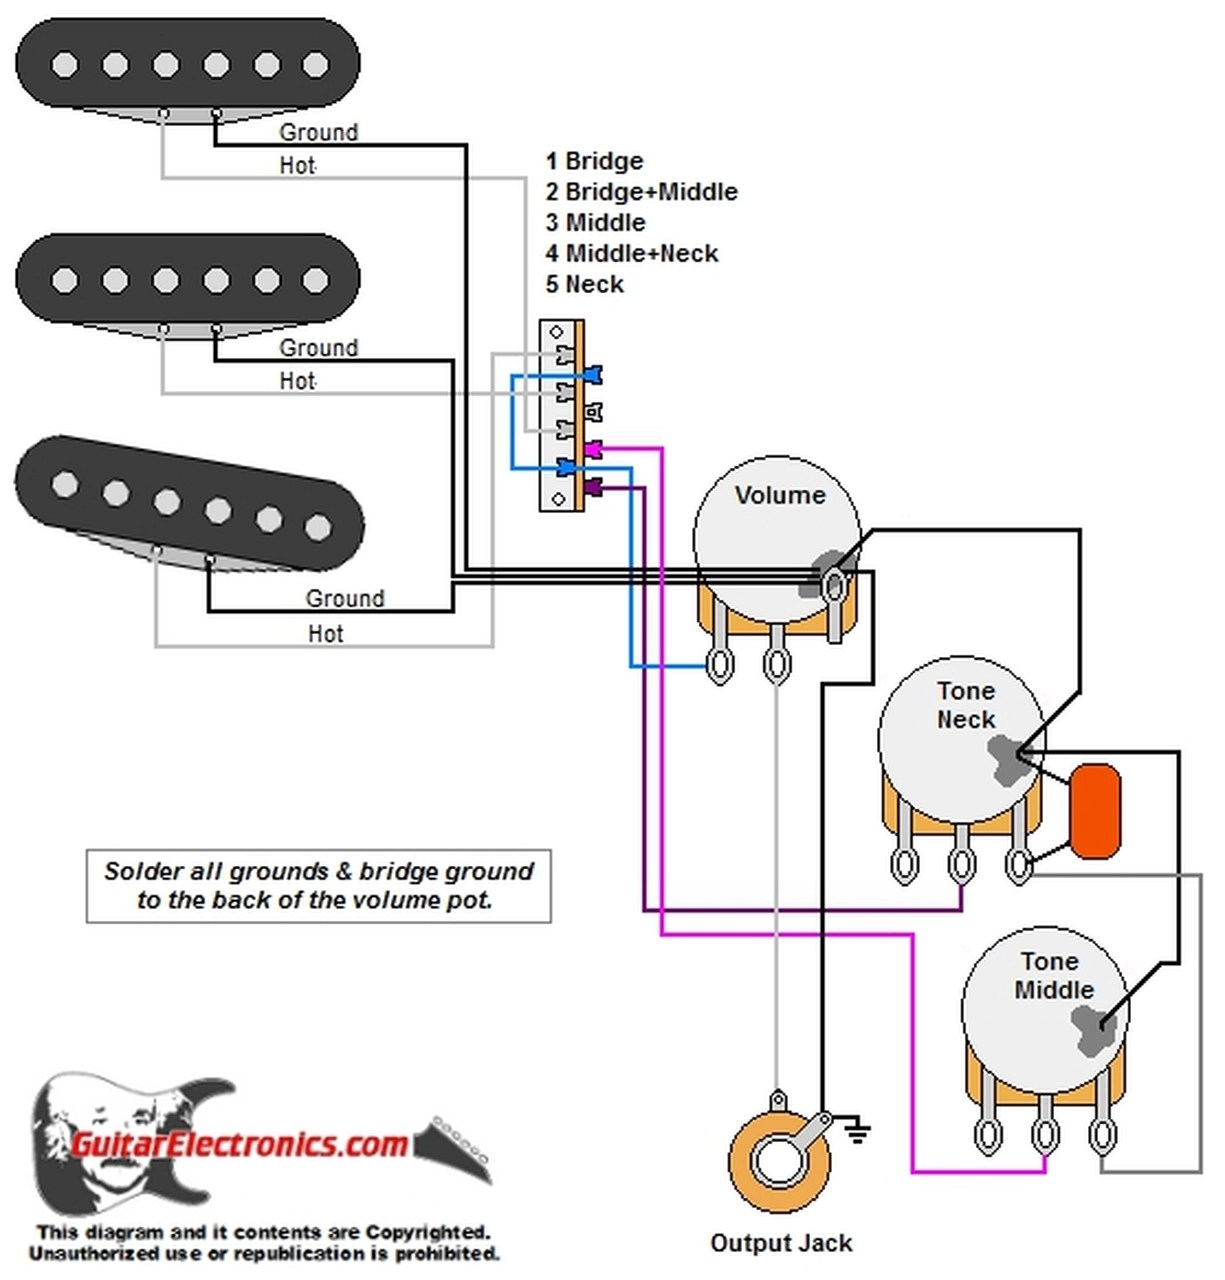 hight resolution of fender strat wiring diagrams wiring diagram schematicstrat style guitar wiring diagram fender squier strat wiring diagram